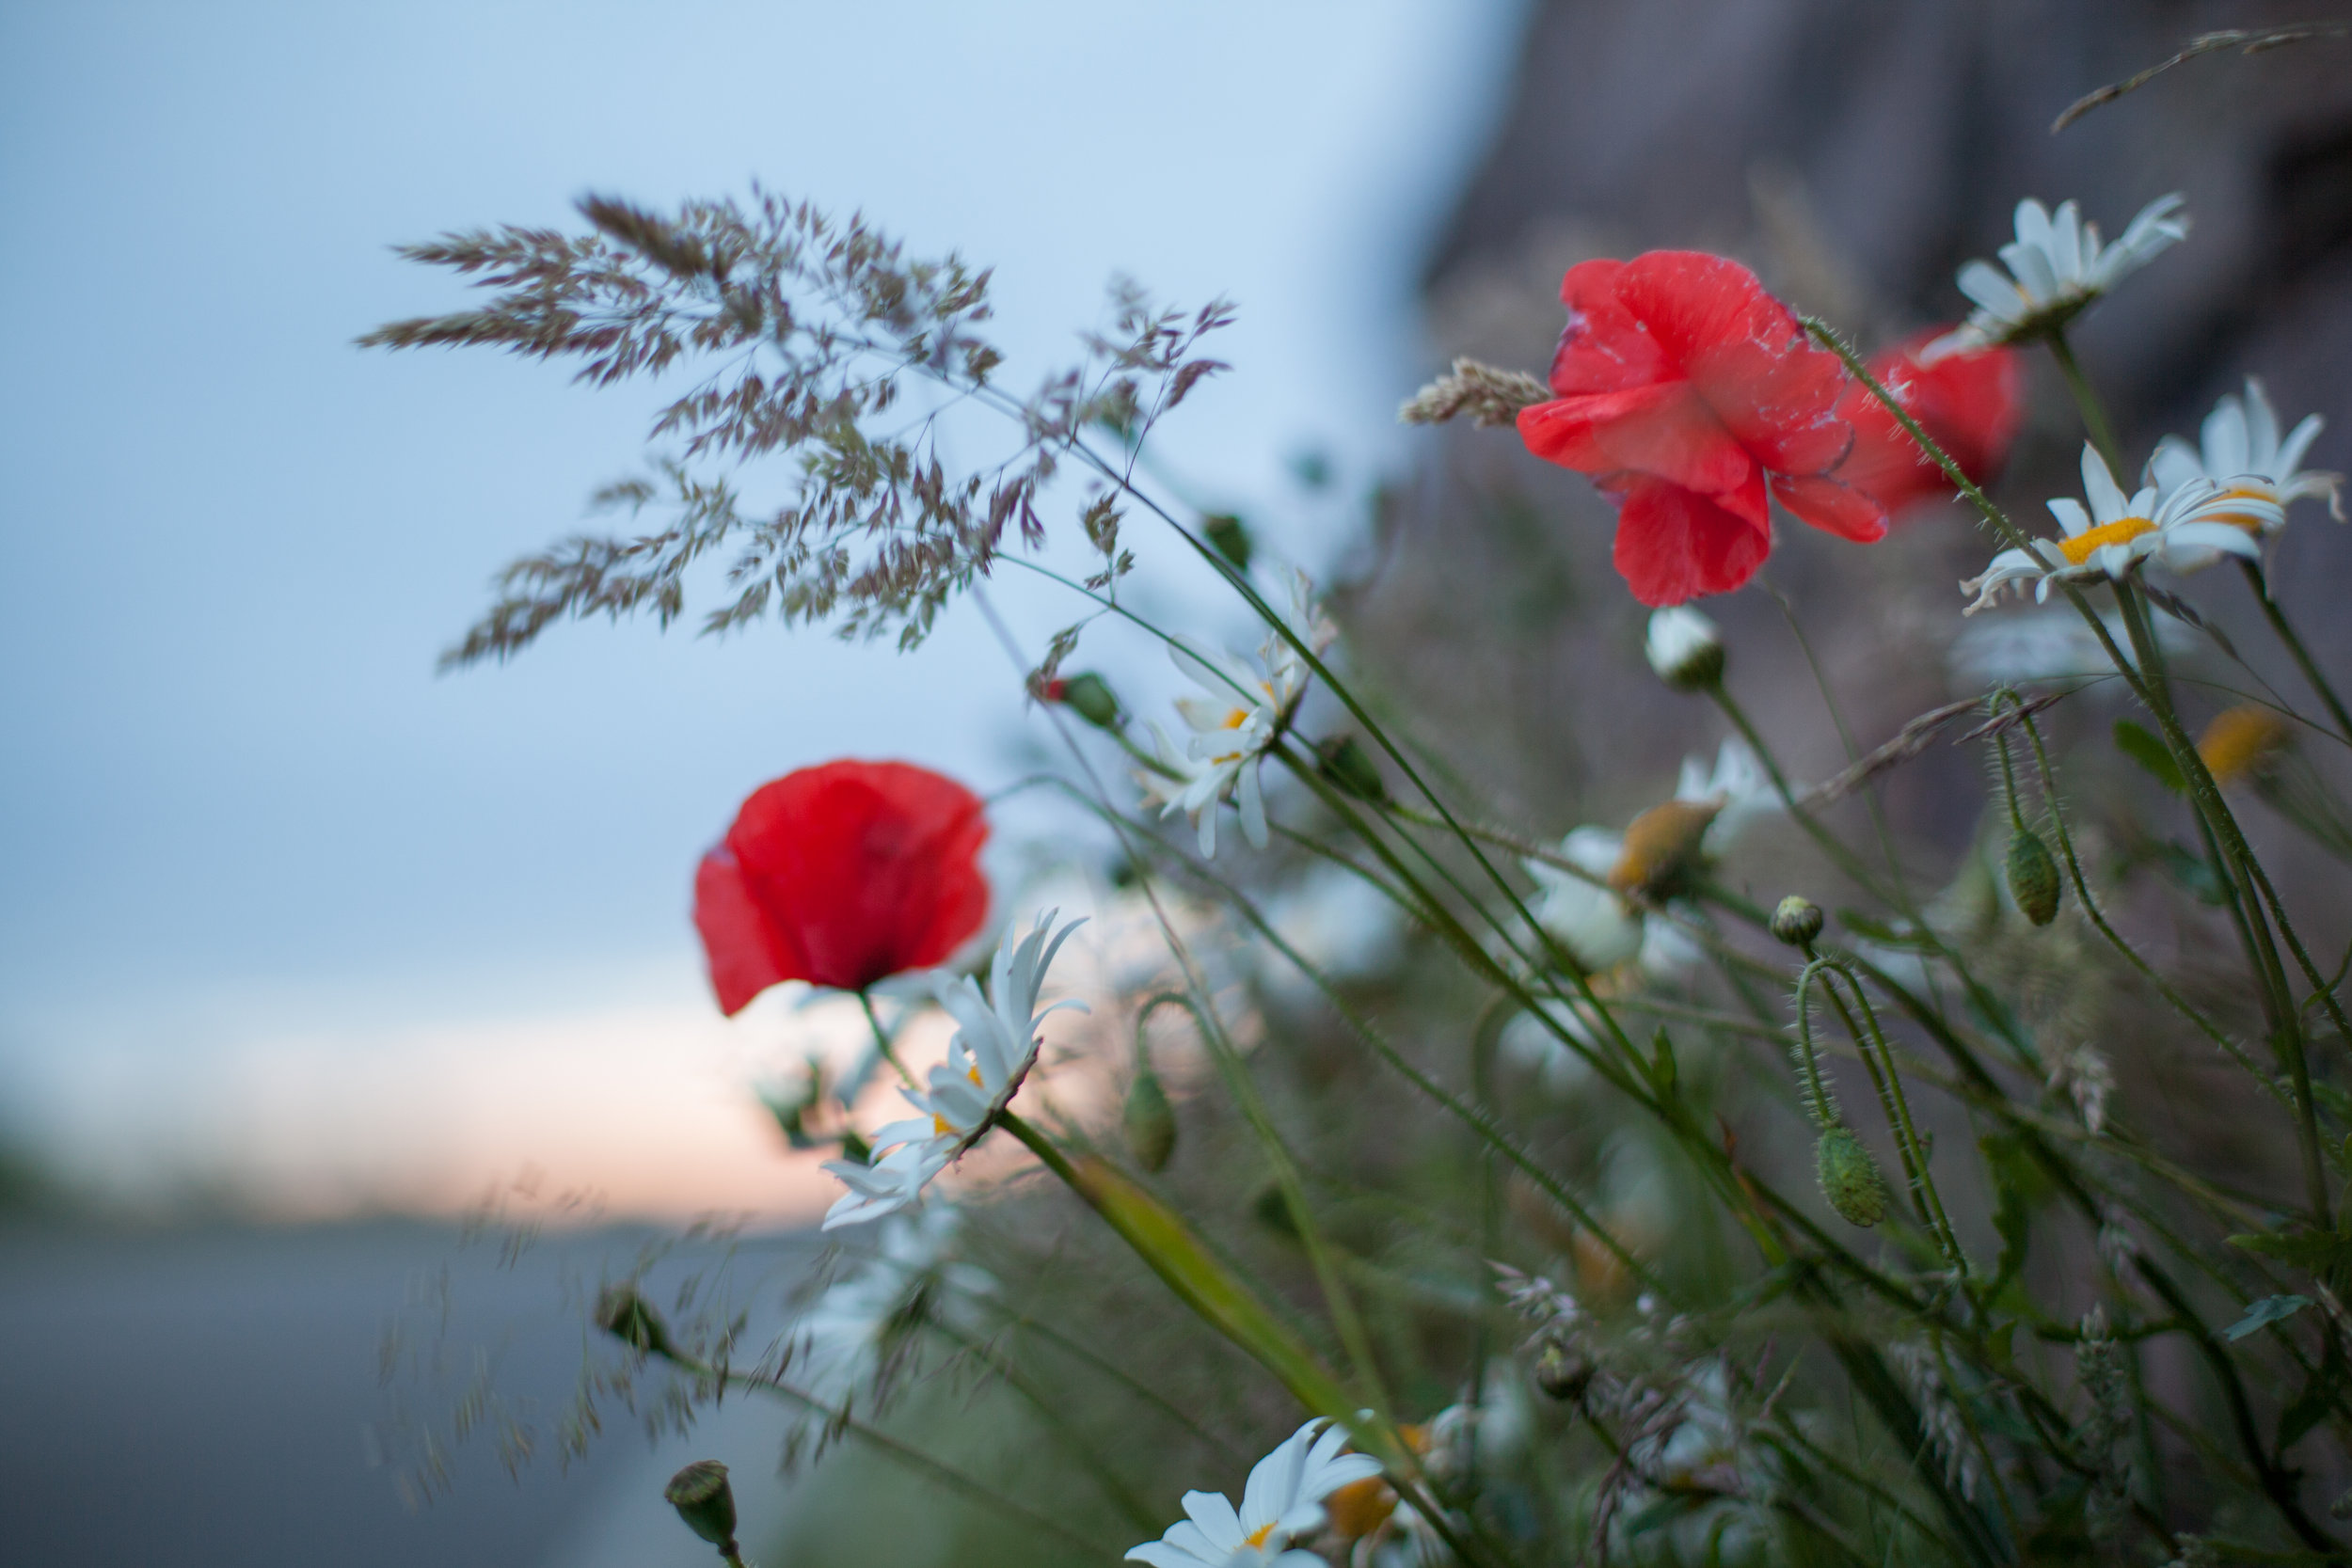 Wild flowers grow on the side of a road.